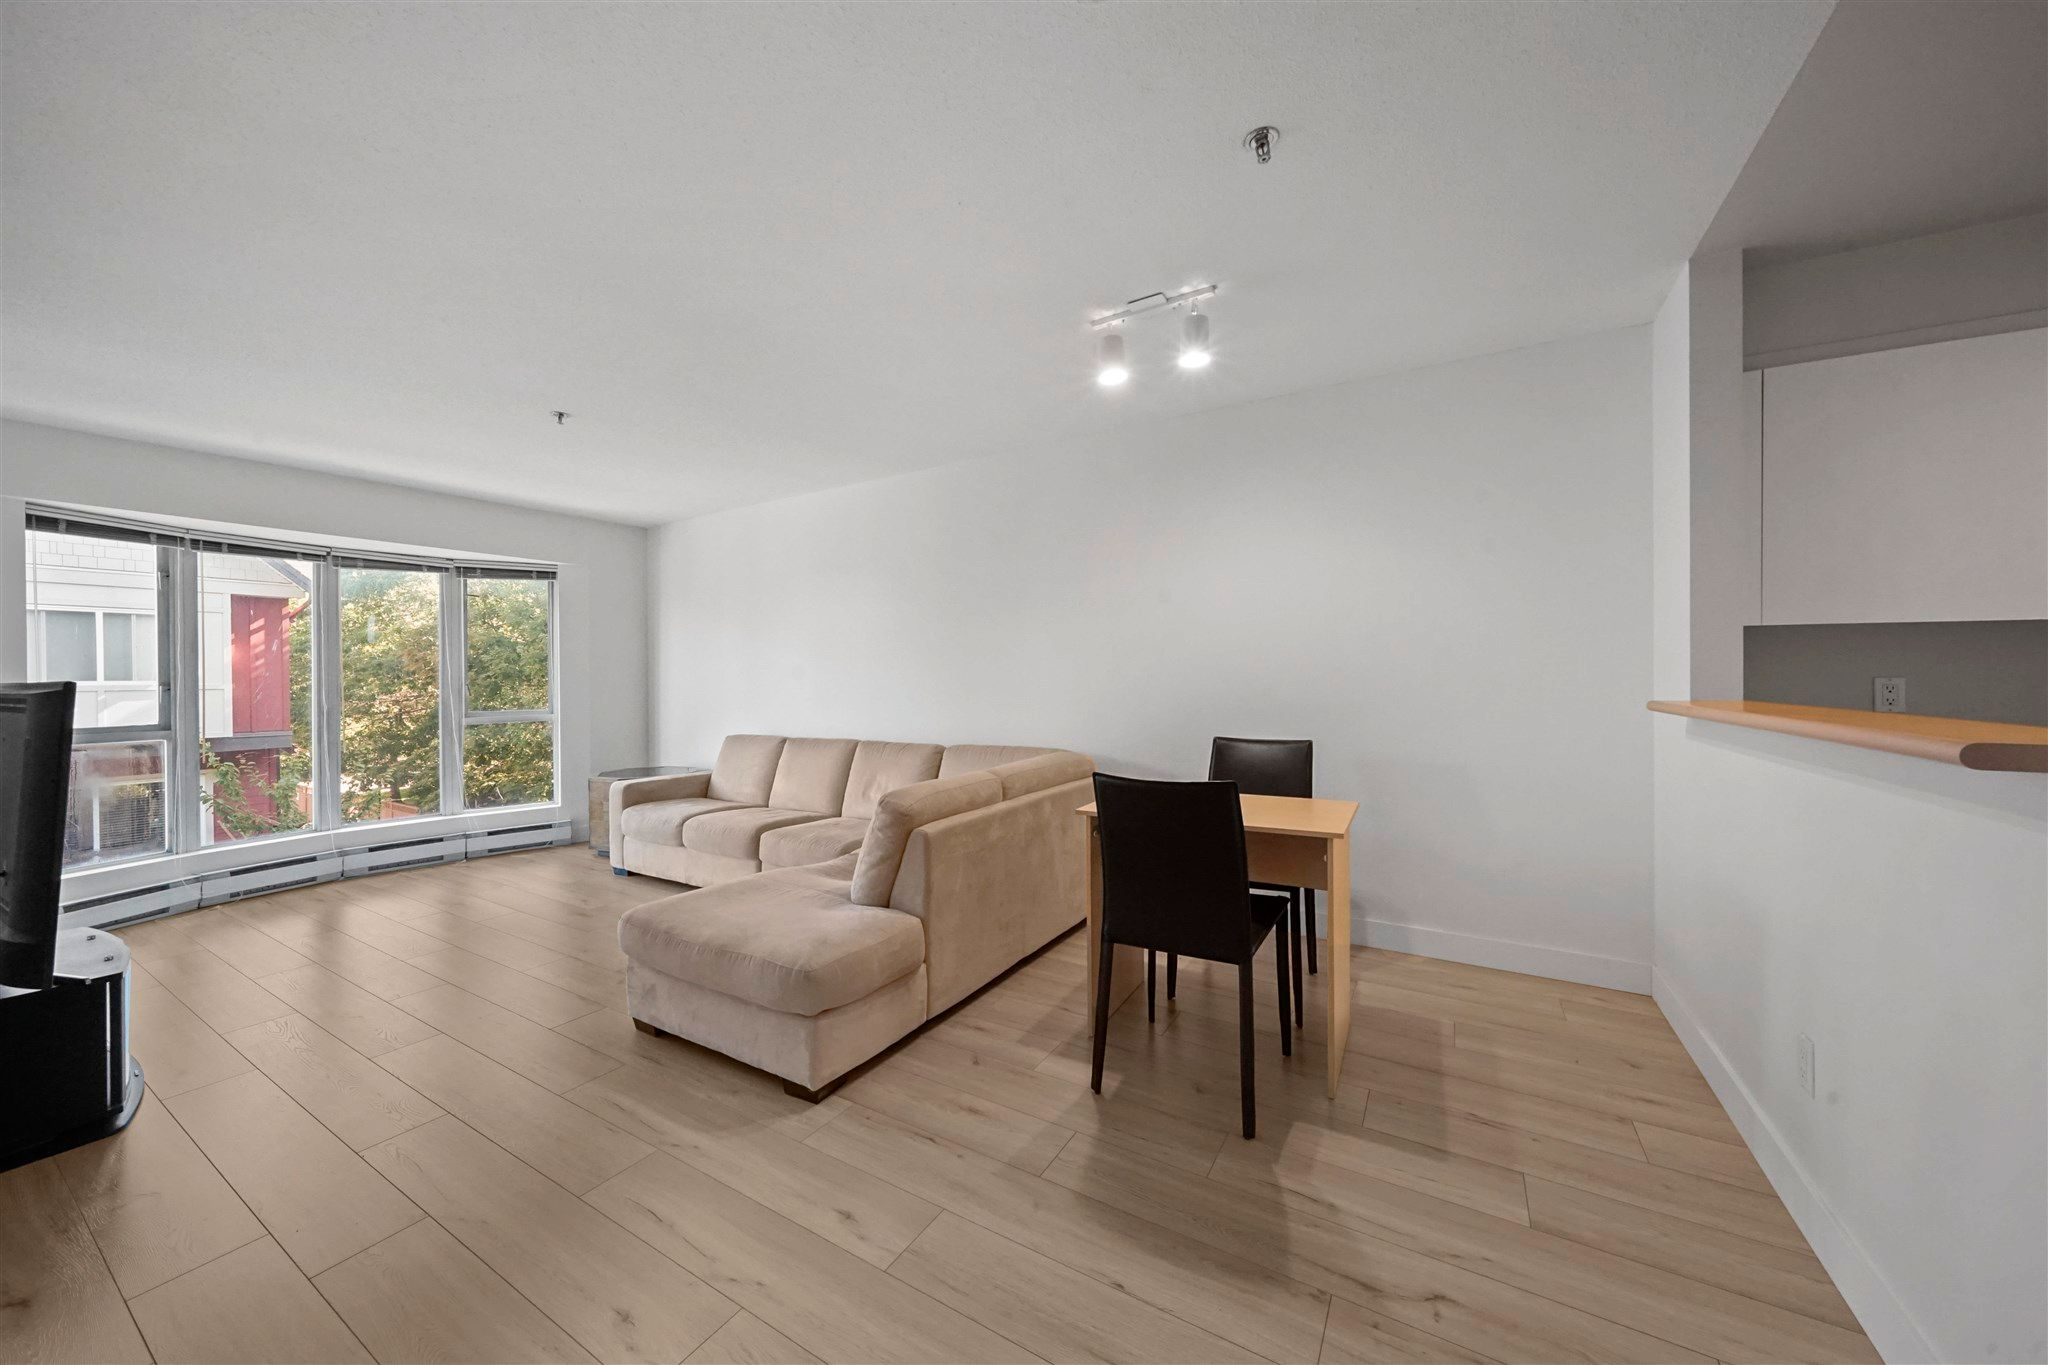 """Main Photo: 213 7700 ST. ALBANS Road in Richmond: Brighouse South Condo for sale in """"Sunnvale"""" : MLS®# R2594493"""